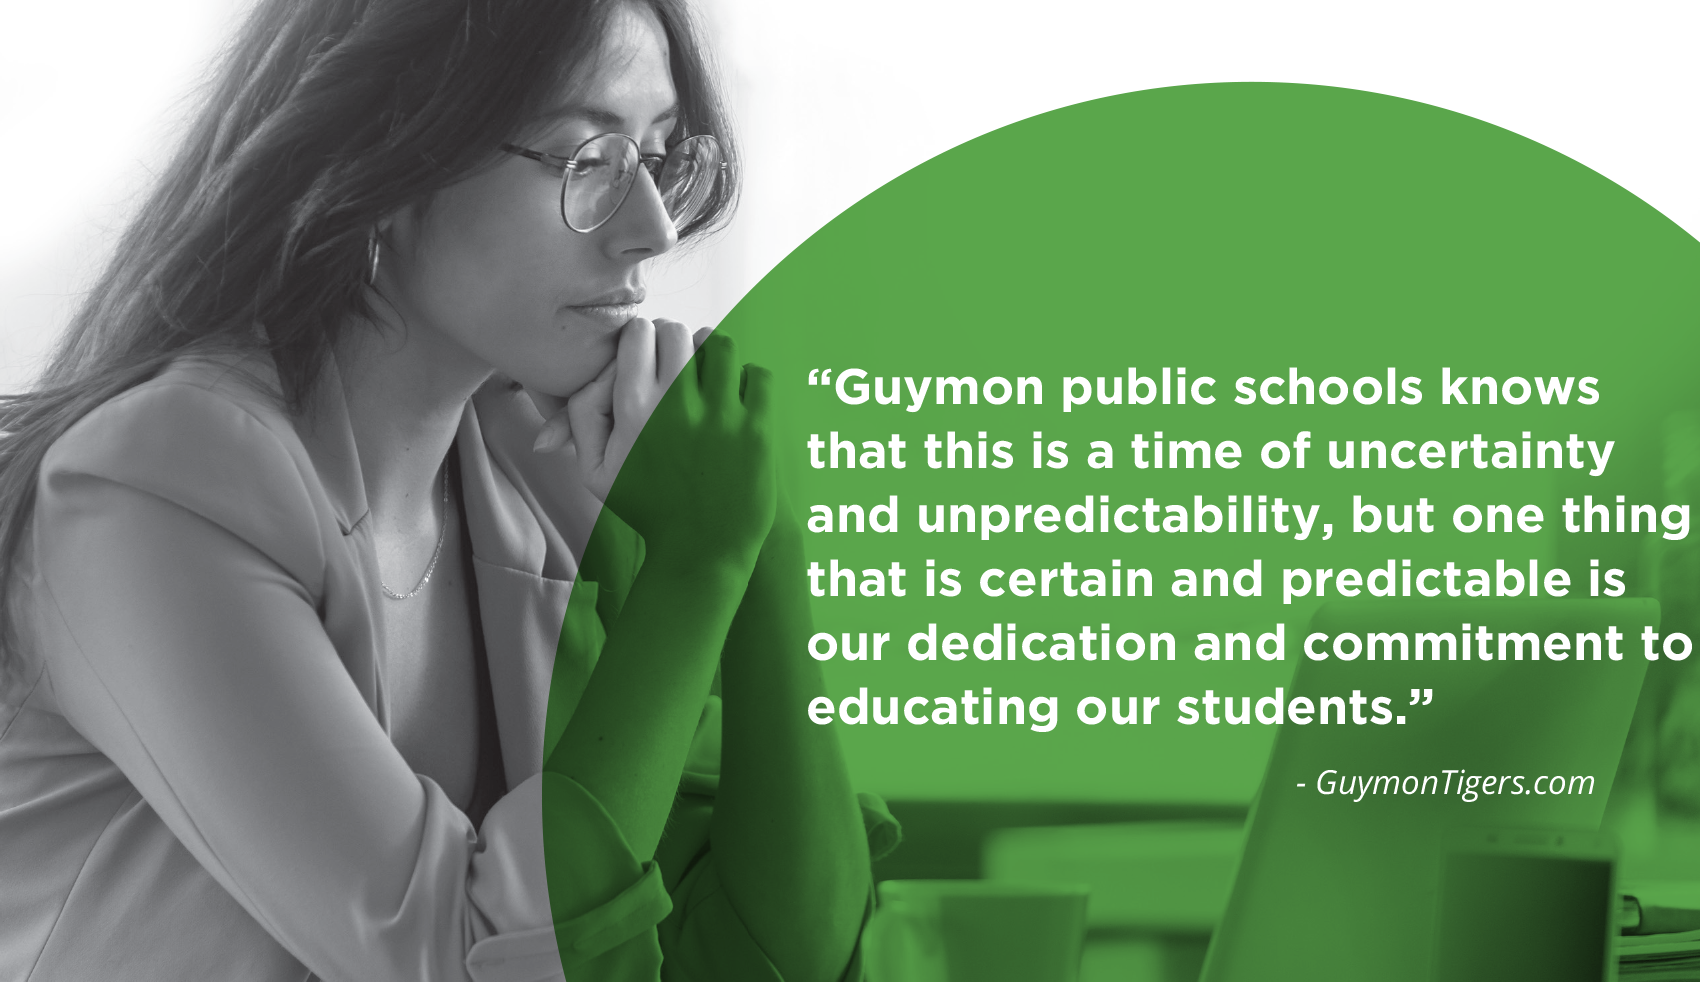 Guymon Public Schools knows that this is a time of uncertainty andunpredictability, but one thing that is certain and predictable is our dedication and commitment to educating our students.